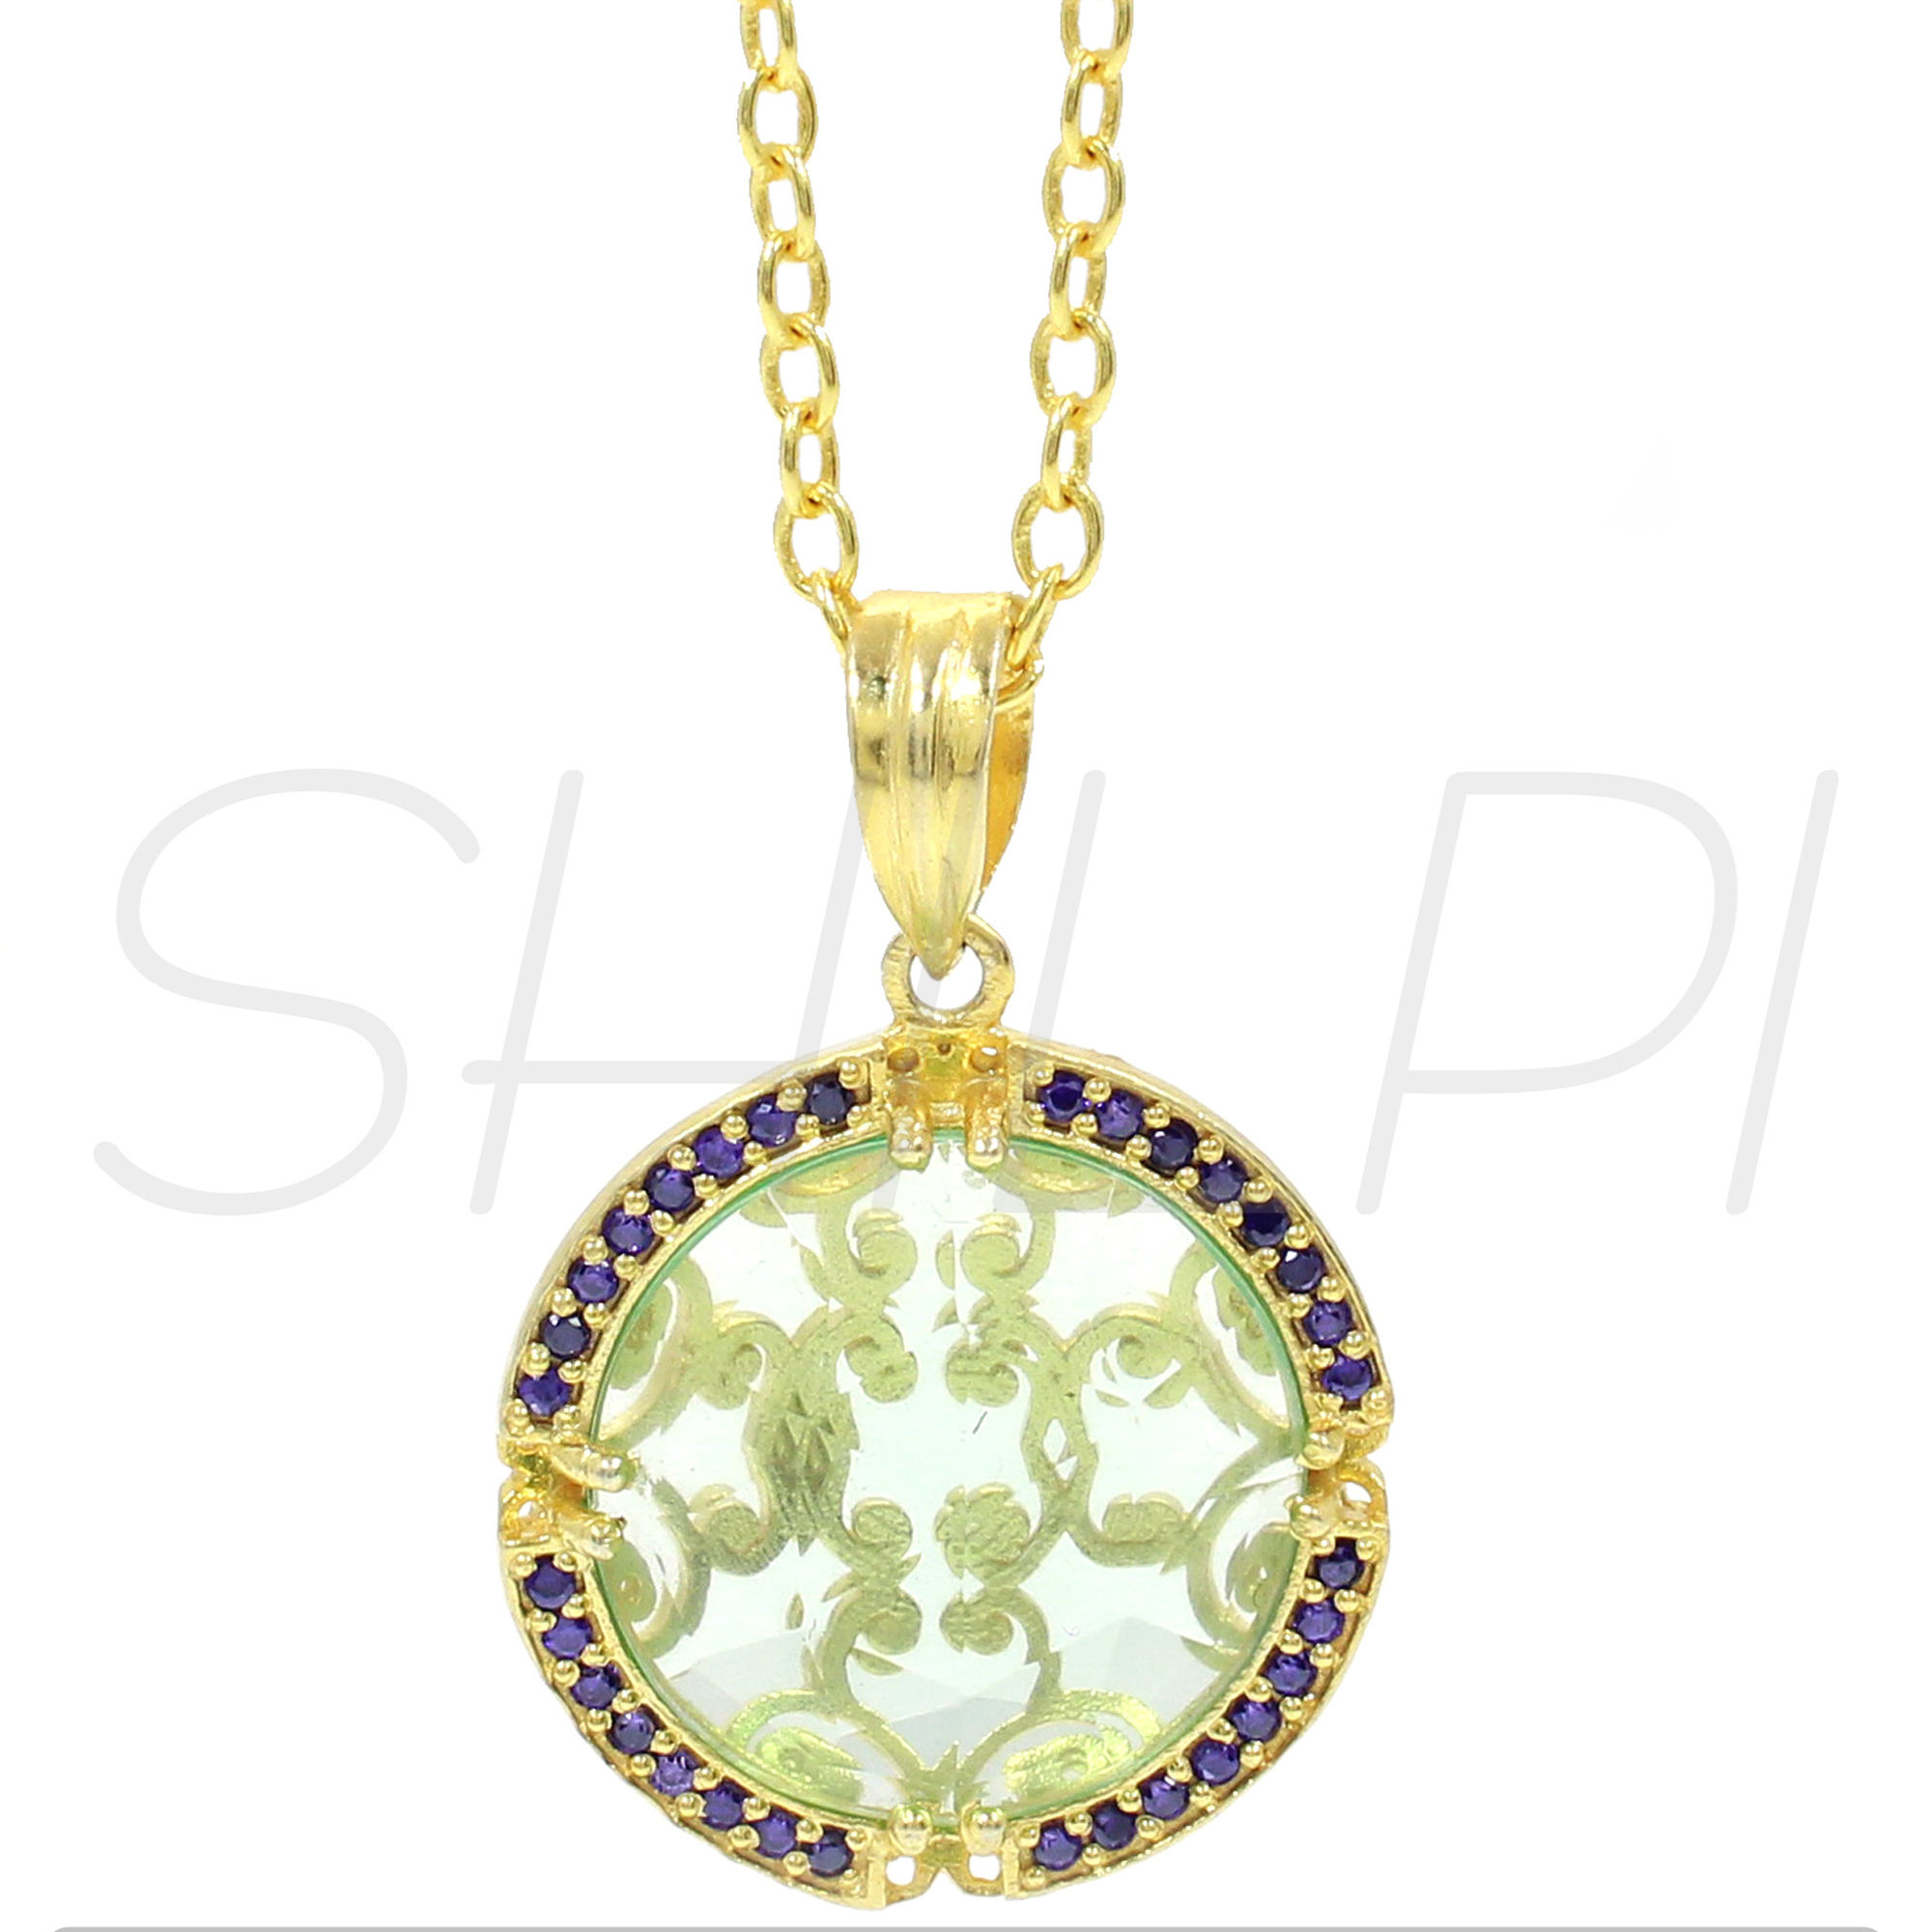 Amethyst Hydro &  Blue CZ Gold Plated Handmade Long Chain Pendant Necklace